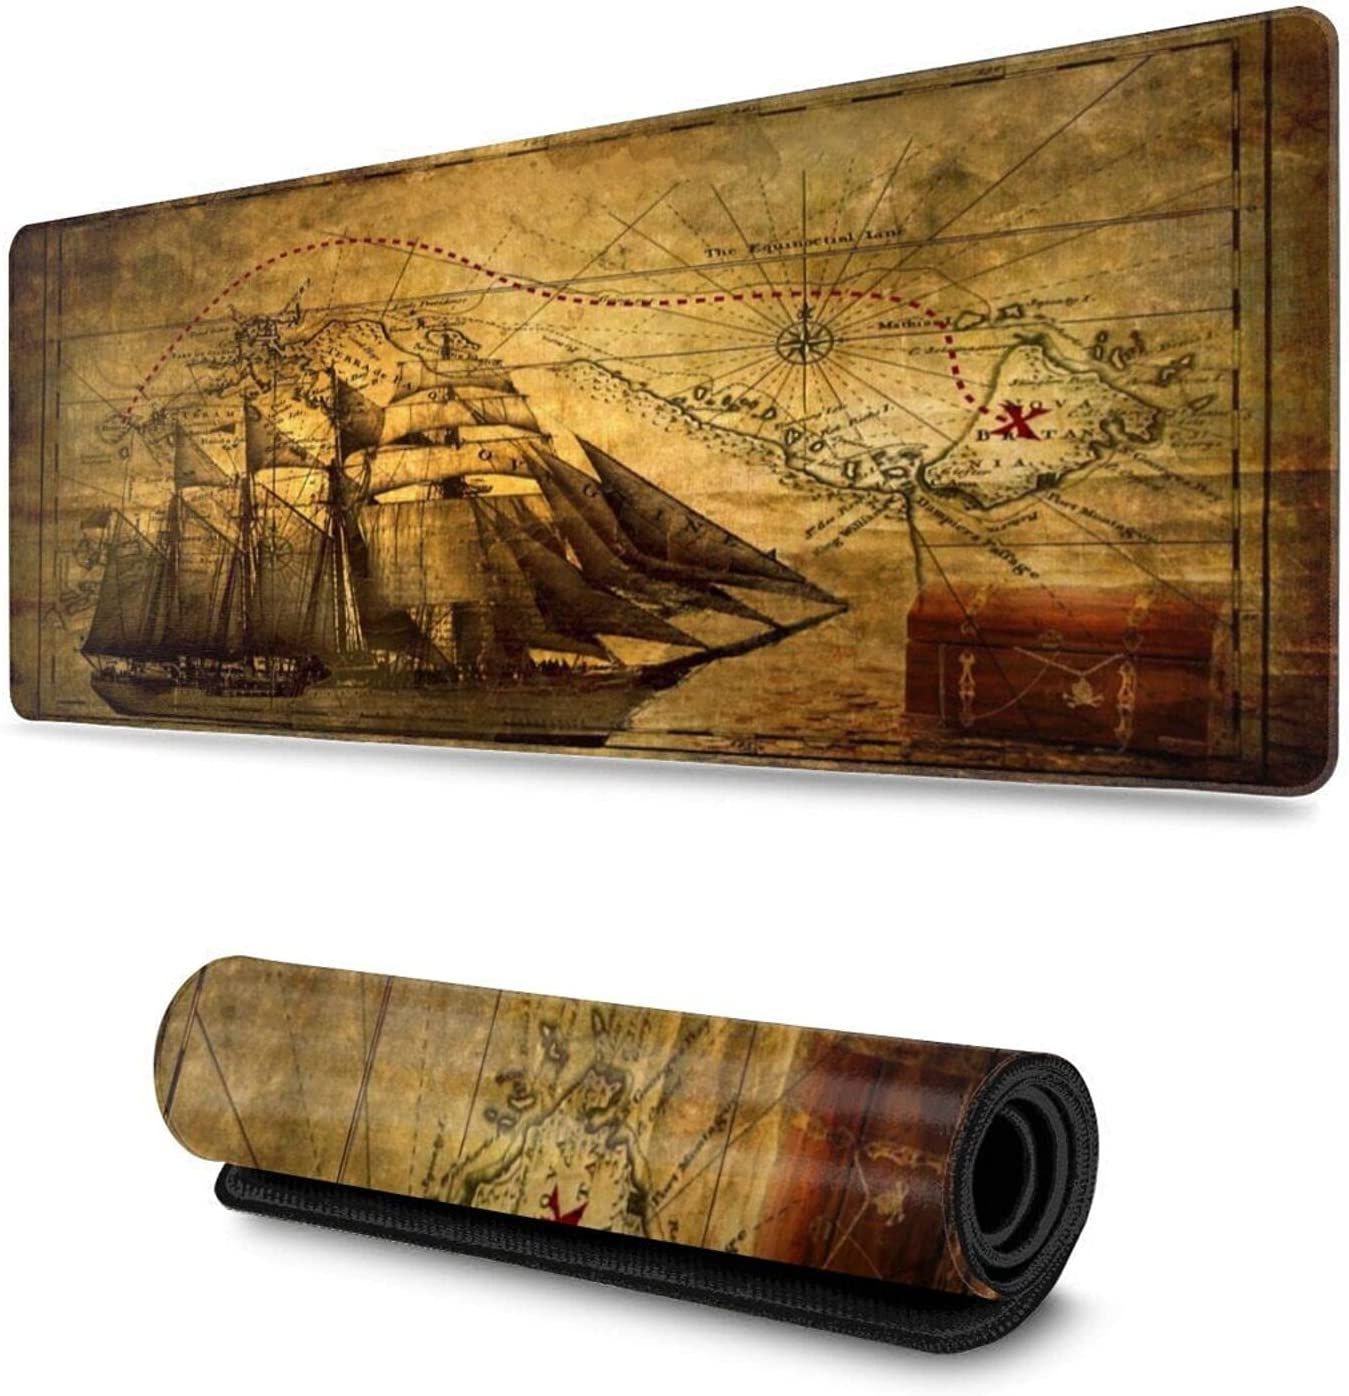 Bombing new work Nautical Vintage Sailing Pirate Long Gaming Easy-to-use Pad Computer Mouse 3